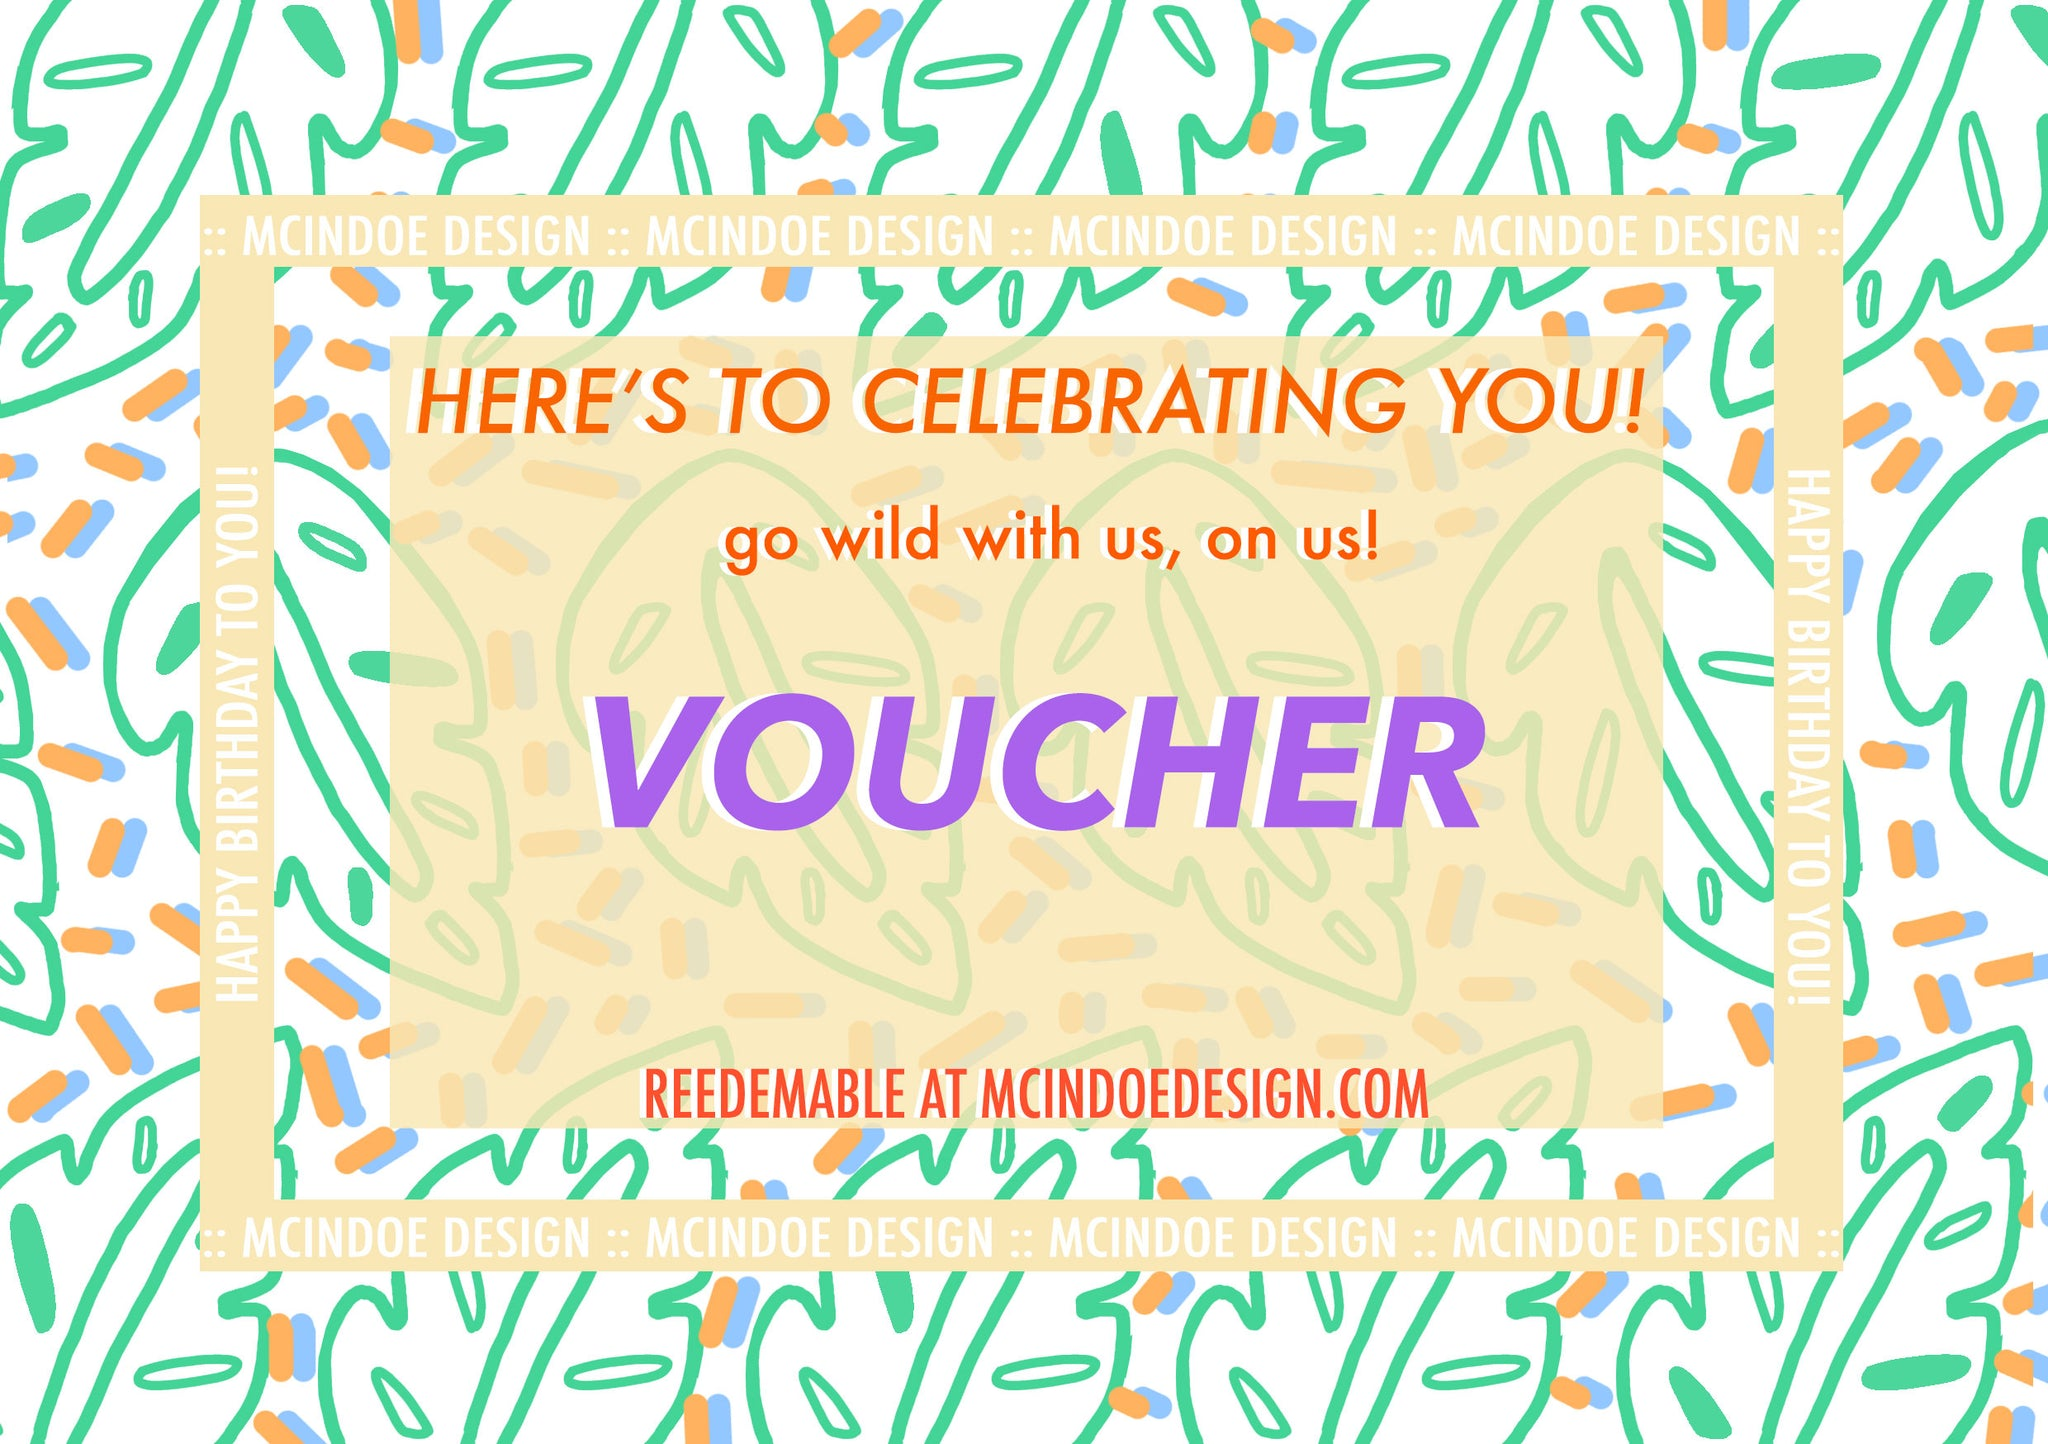 GIFT CARD - MCINDOE DESIGN - tropical - printed - clothing - travel - beach